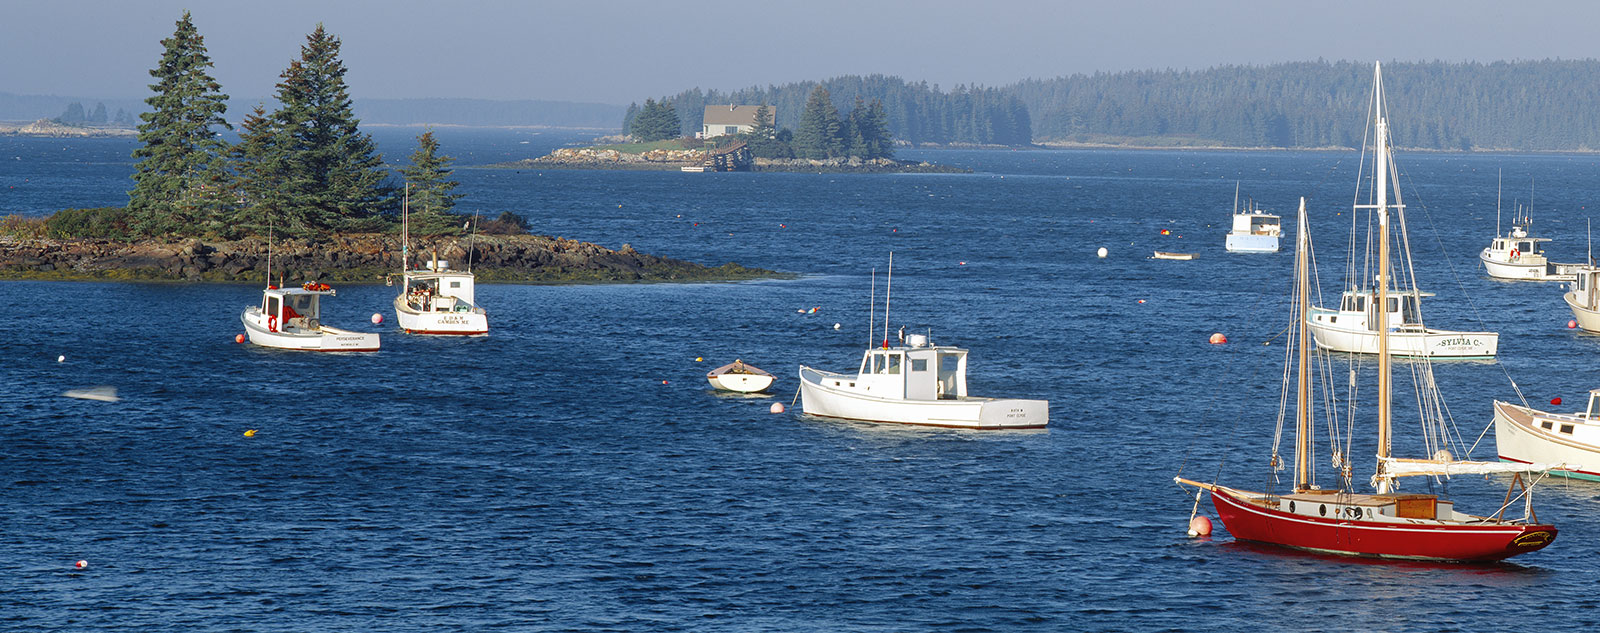 Maine's long lobster fishing season affecting scallop prices